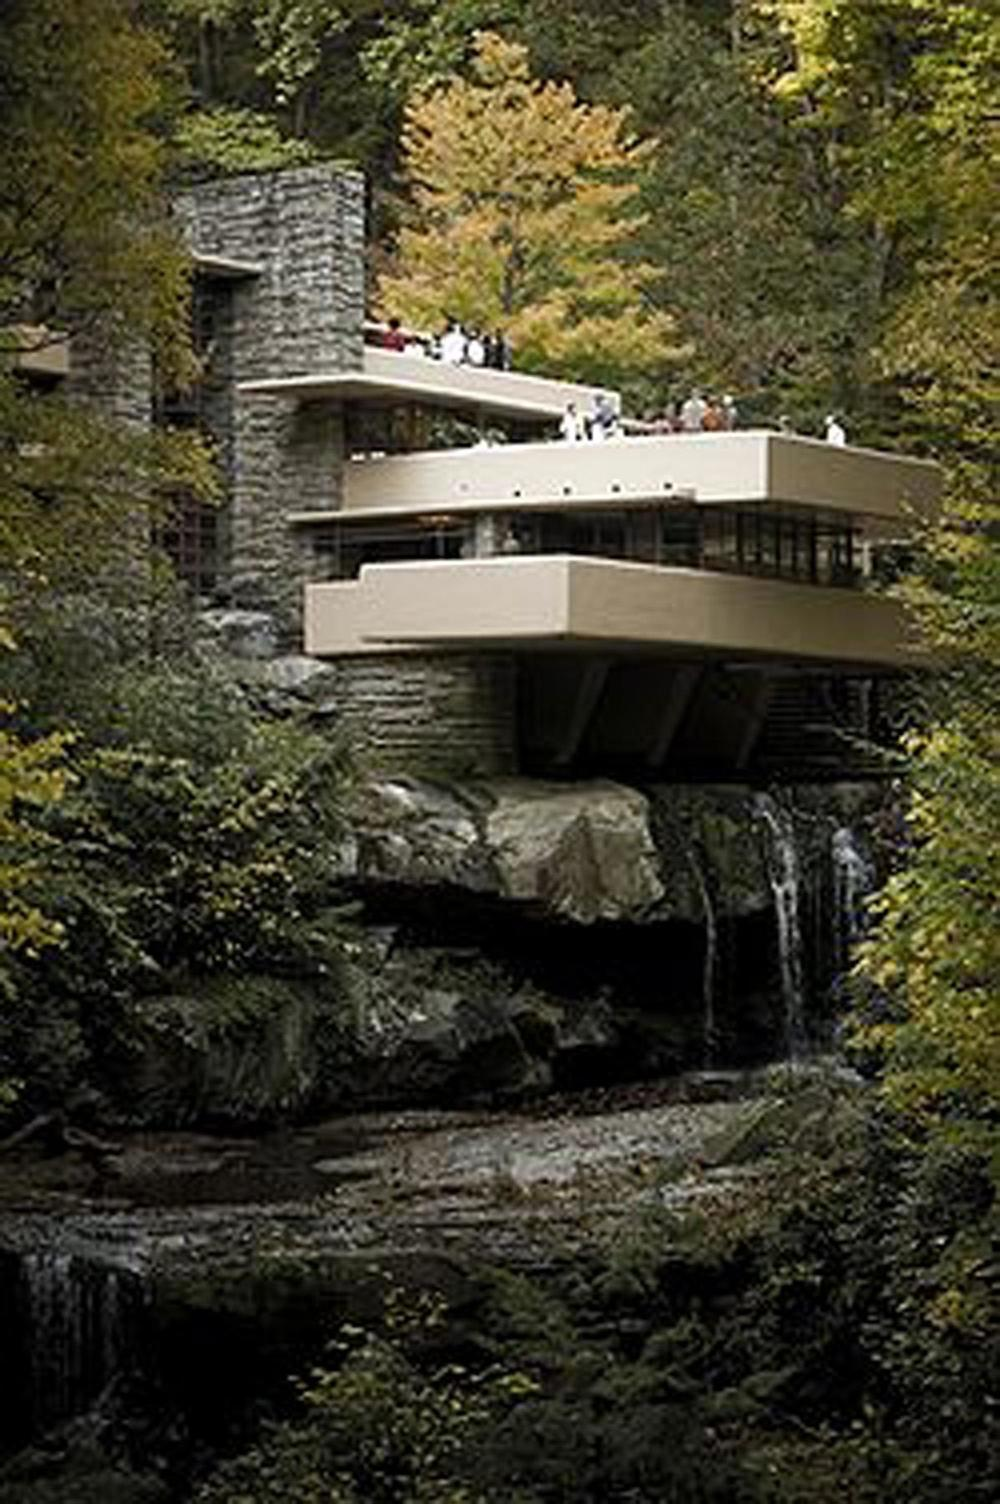 Wright's Fallingwater demonstrates how our natural world and man-made materials can beautifully co-exist. Photo source: Wikipedia, http://en.wikipedia.org/wiki/Fallingwater